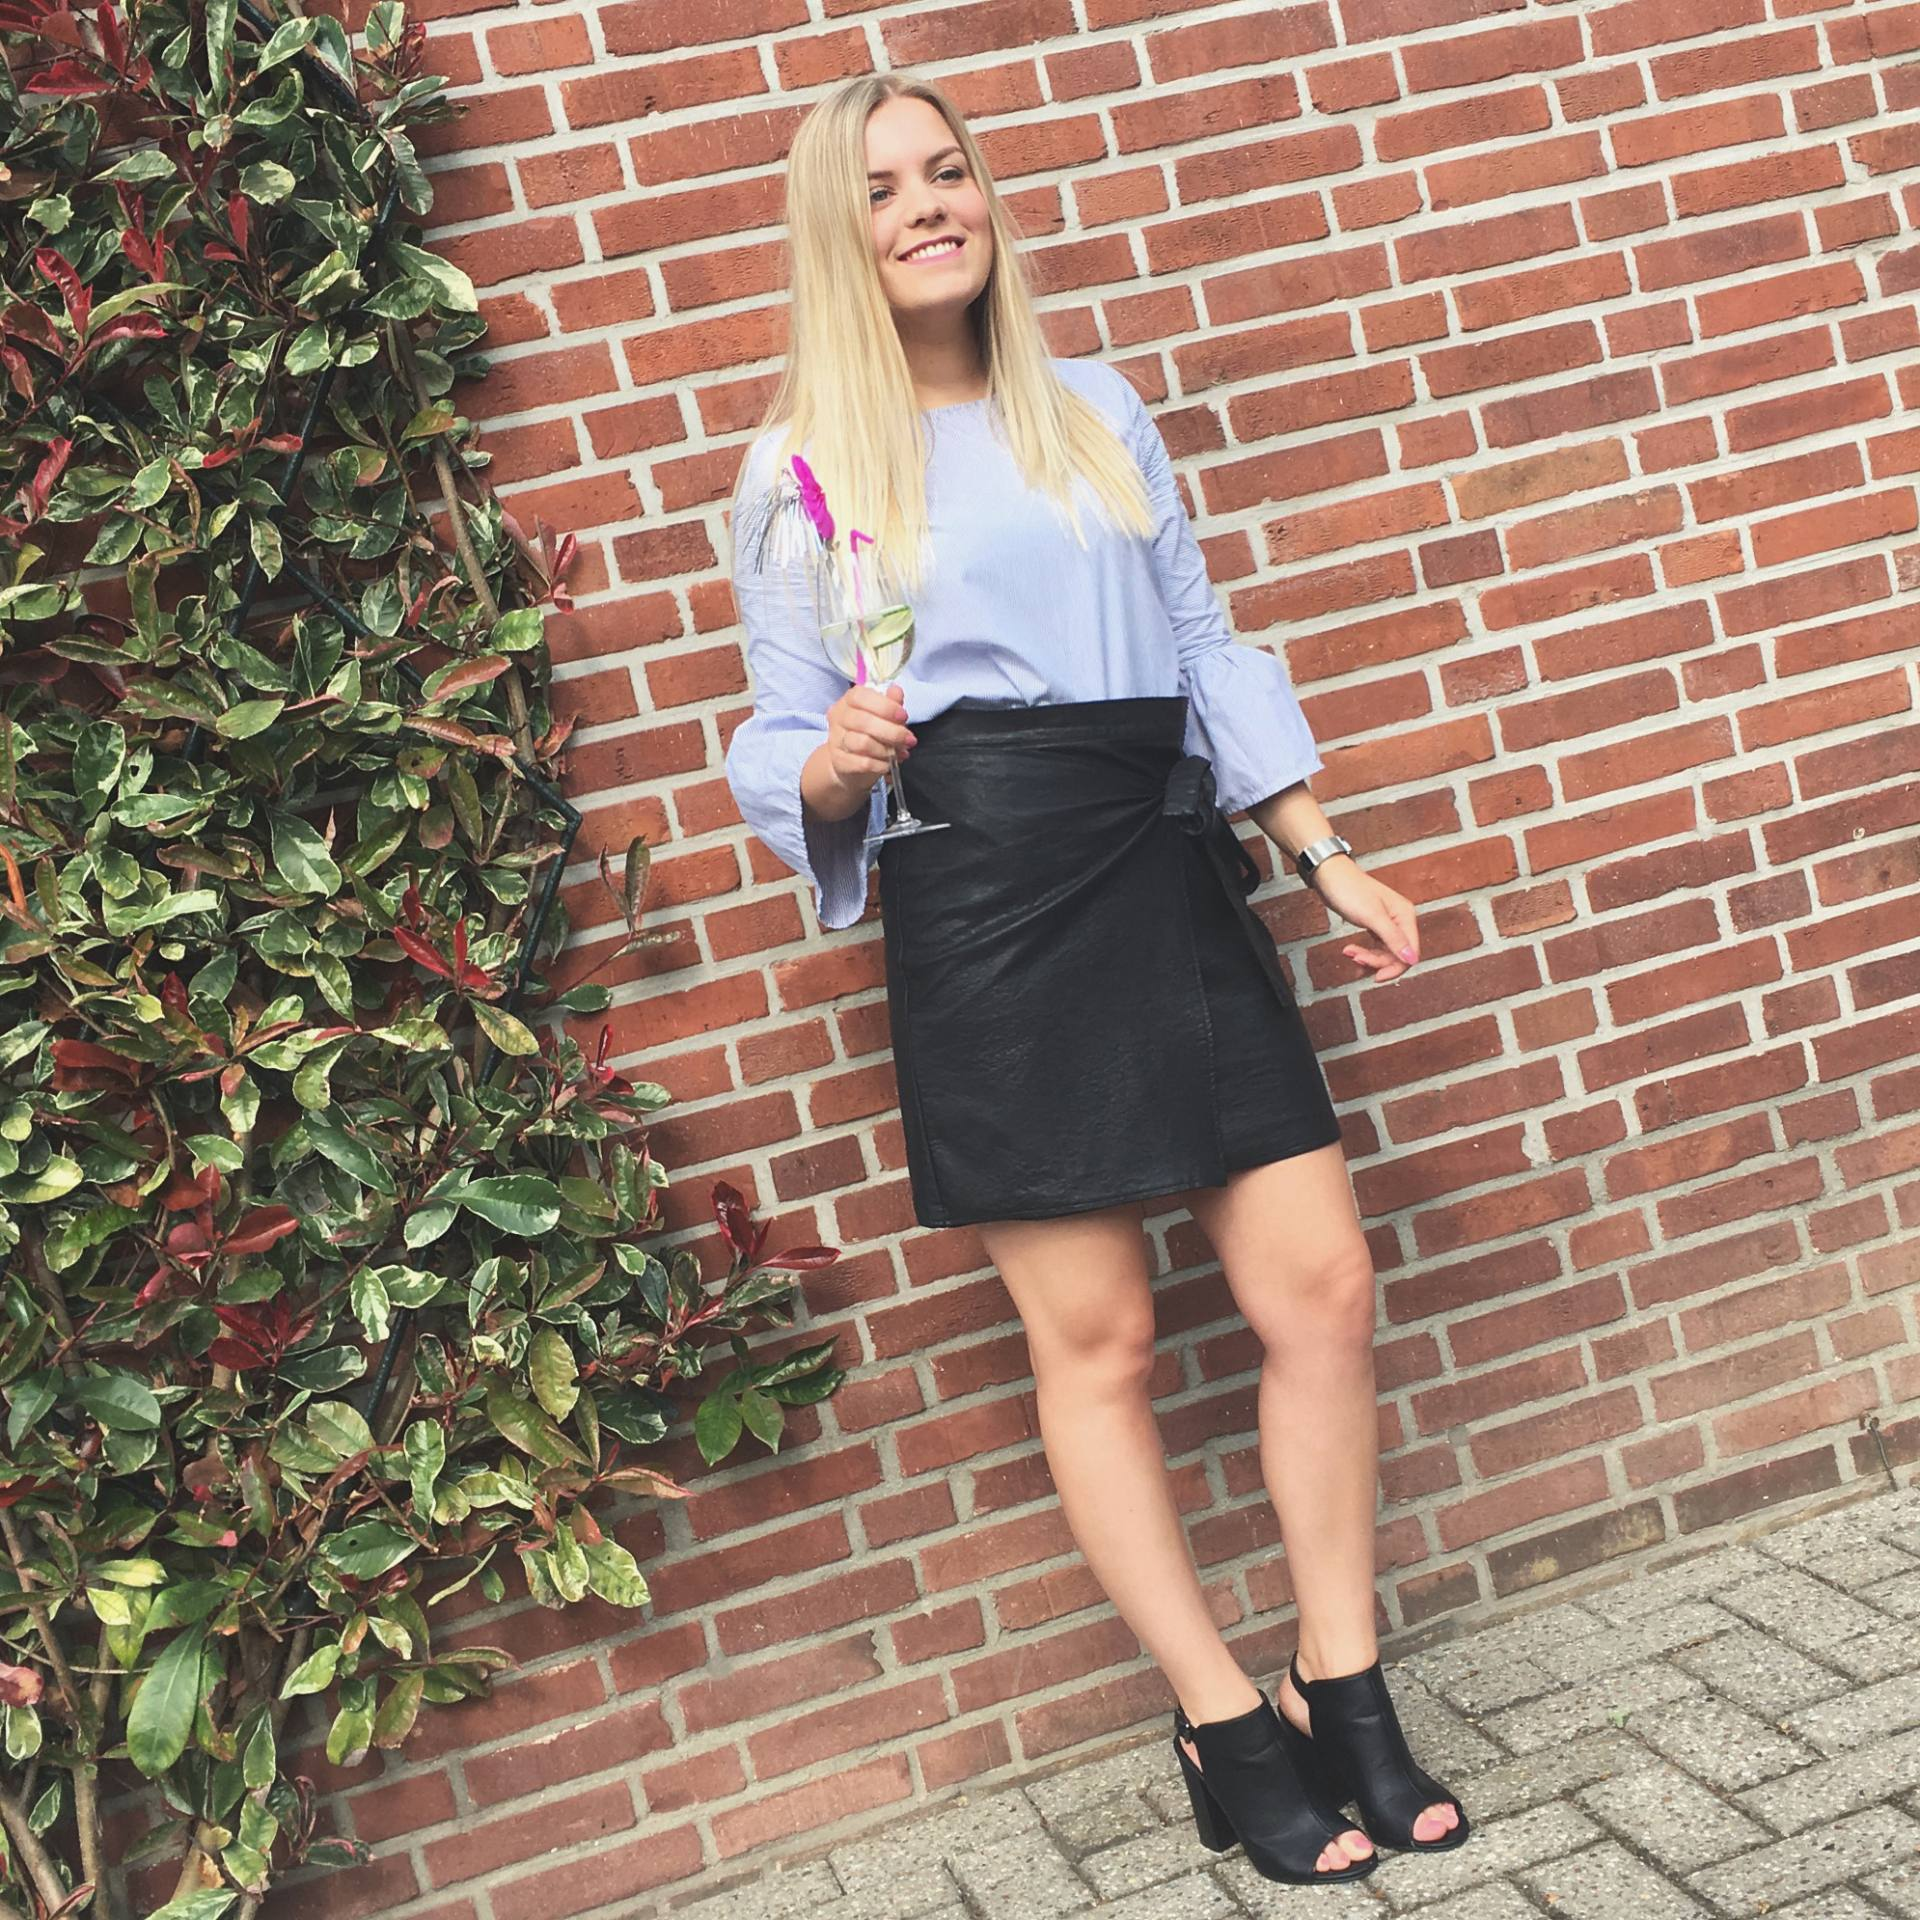 Birthday girl! – 22 jaar